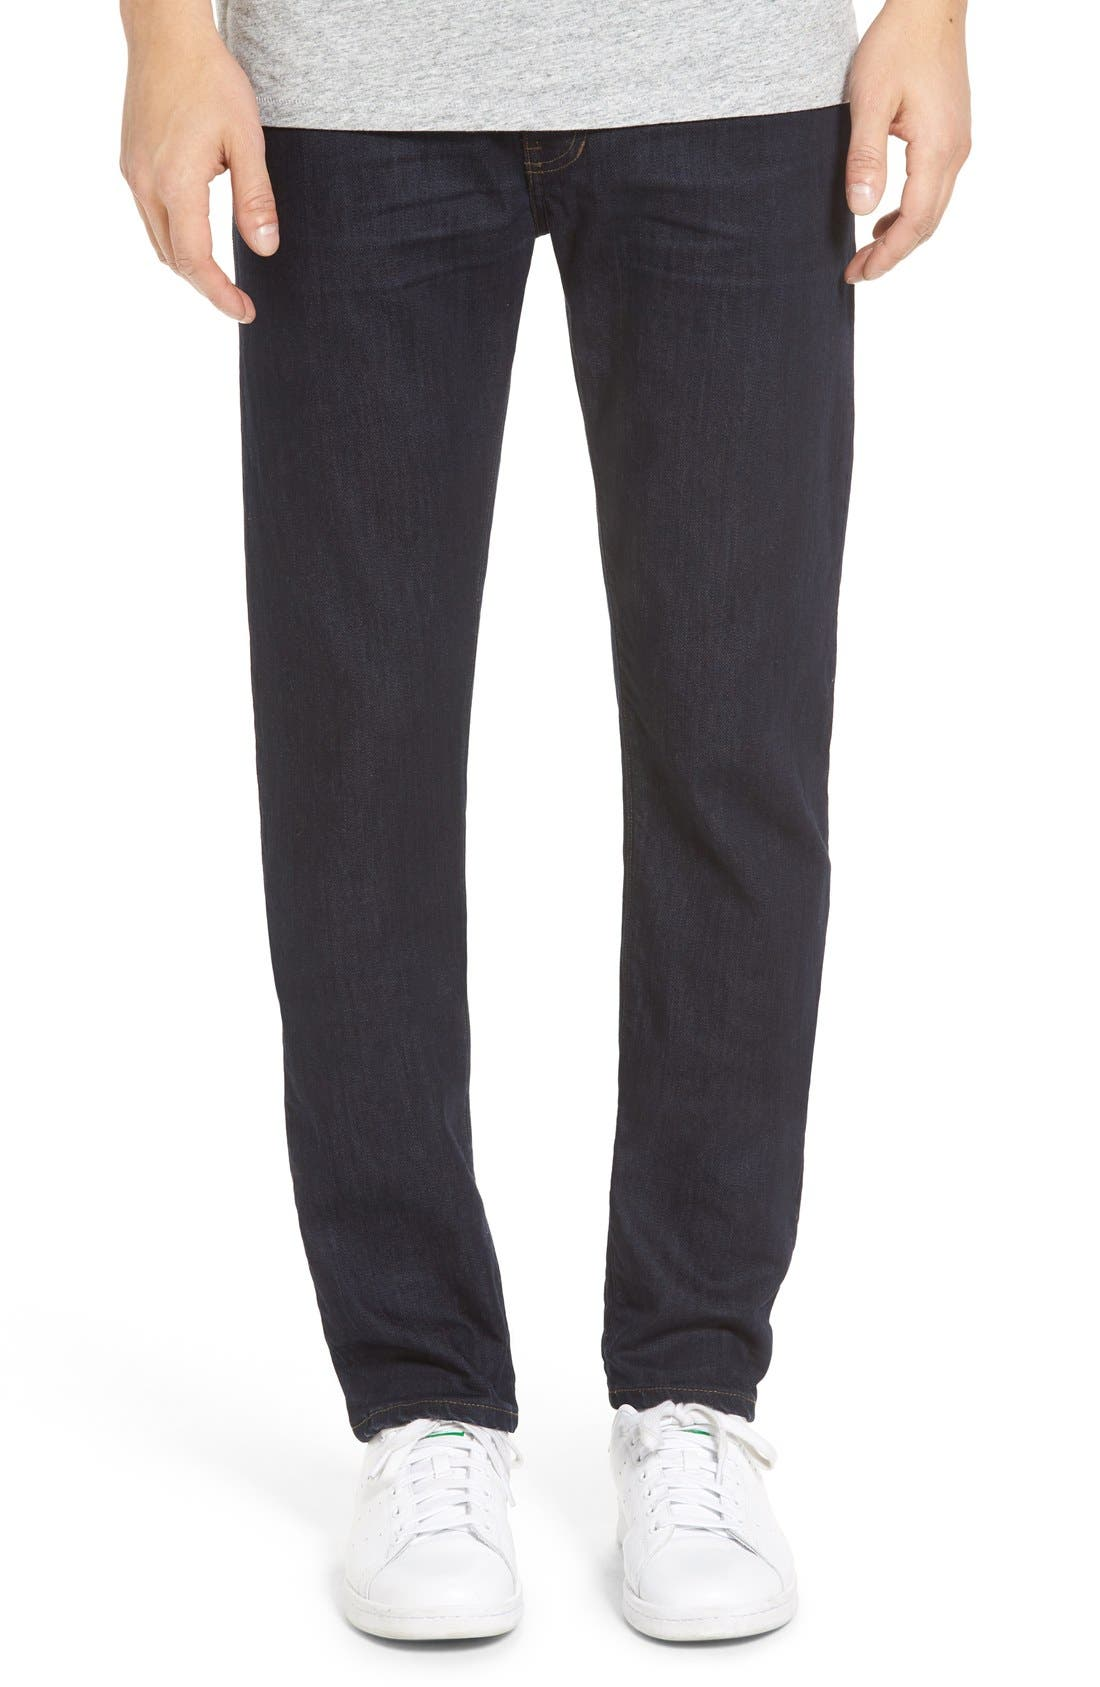 'Jones' Slim Straight Leg Jeans,                             Main thumbnail 1, color,                             418